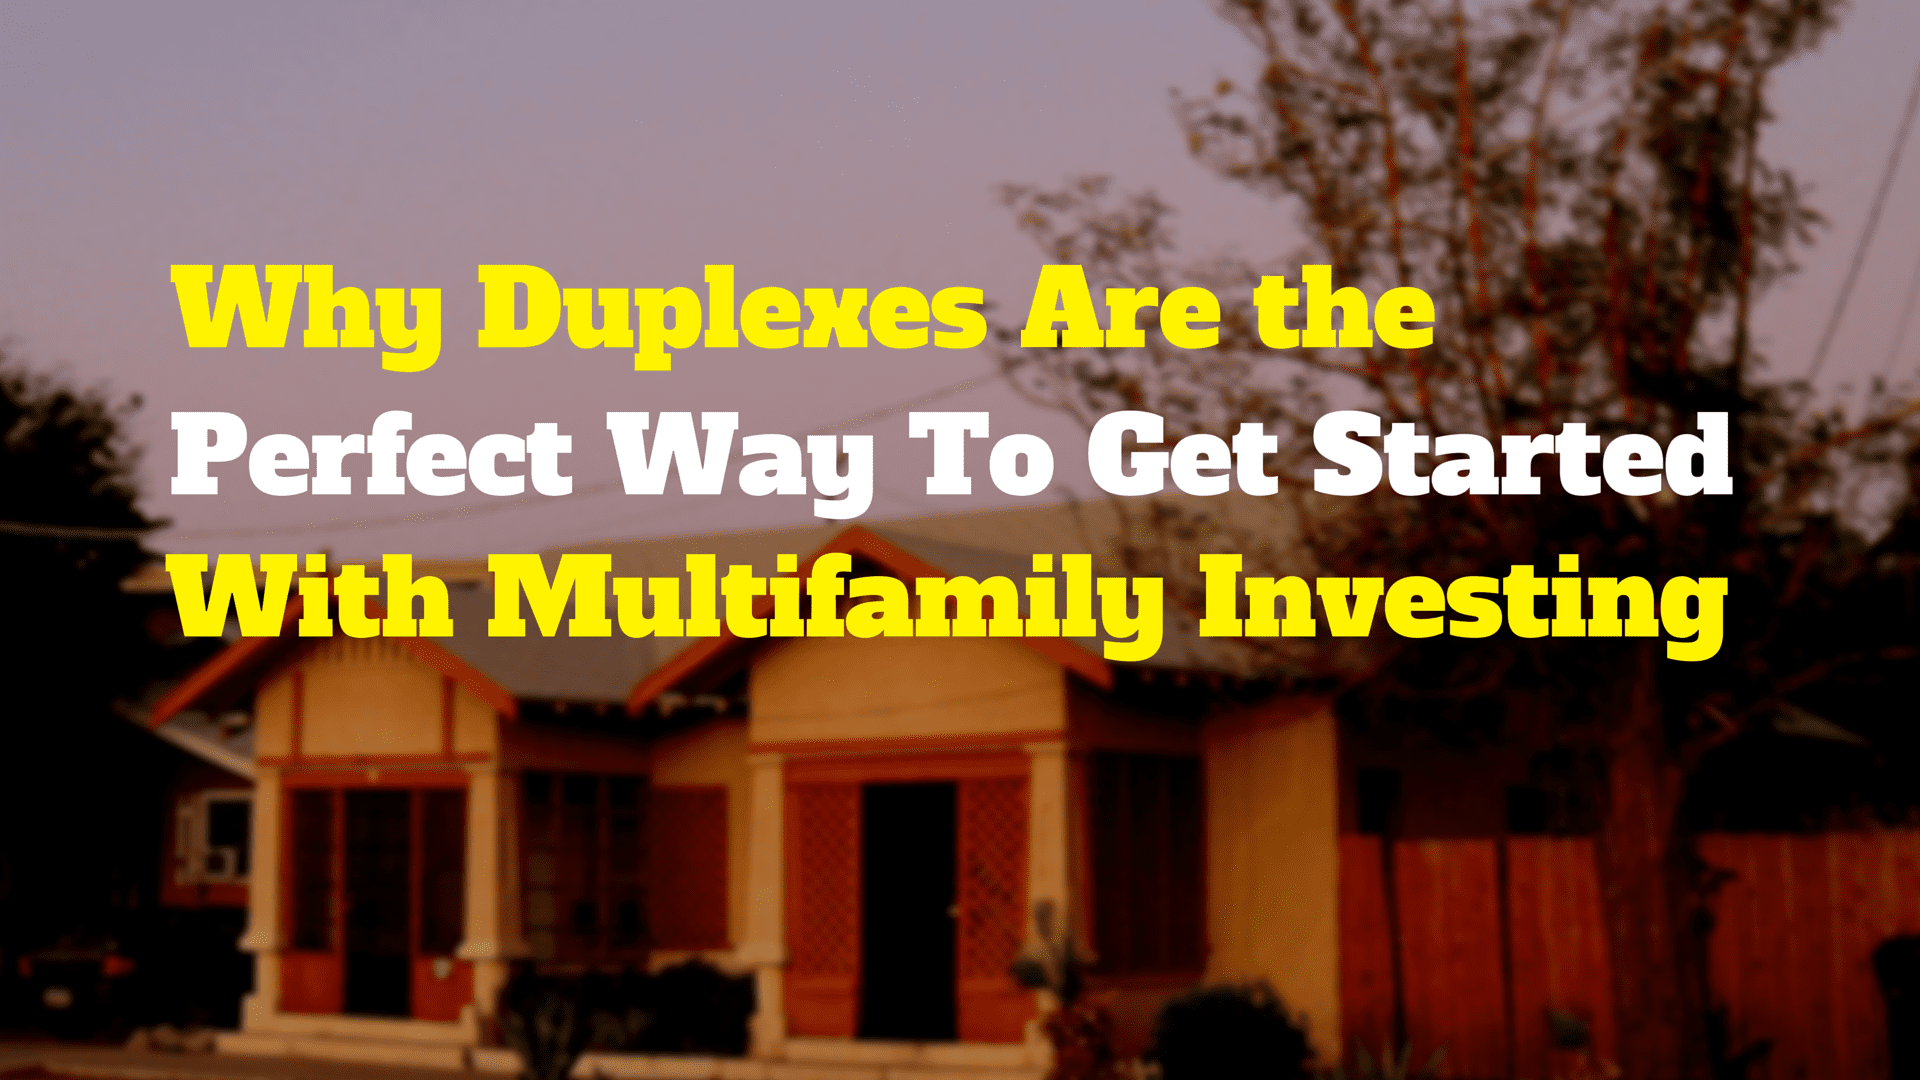 Why Duplexes Are the Perfect Way To Get Started With Multifamily Investing